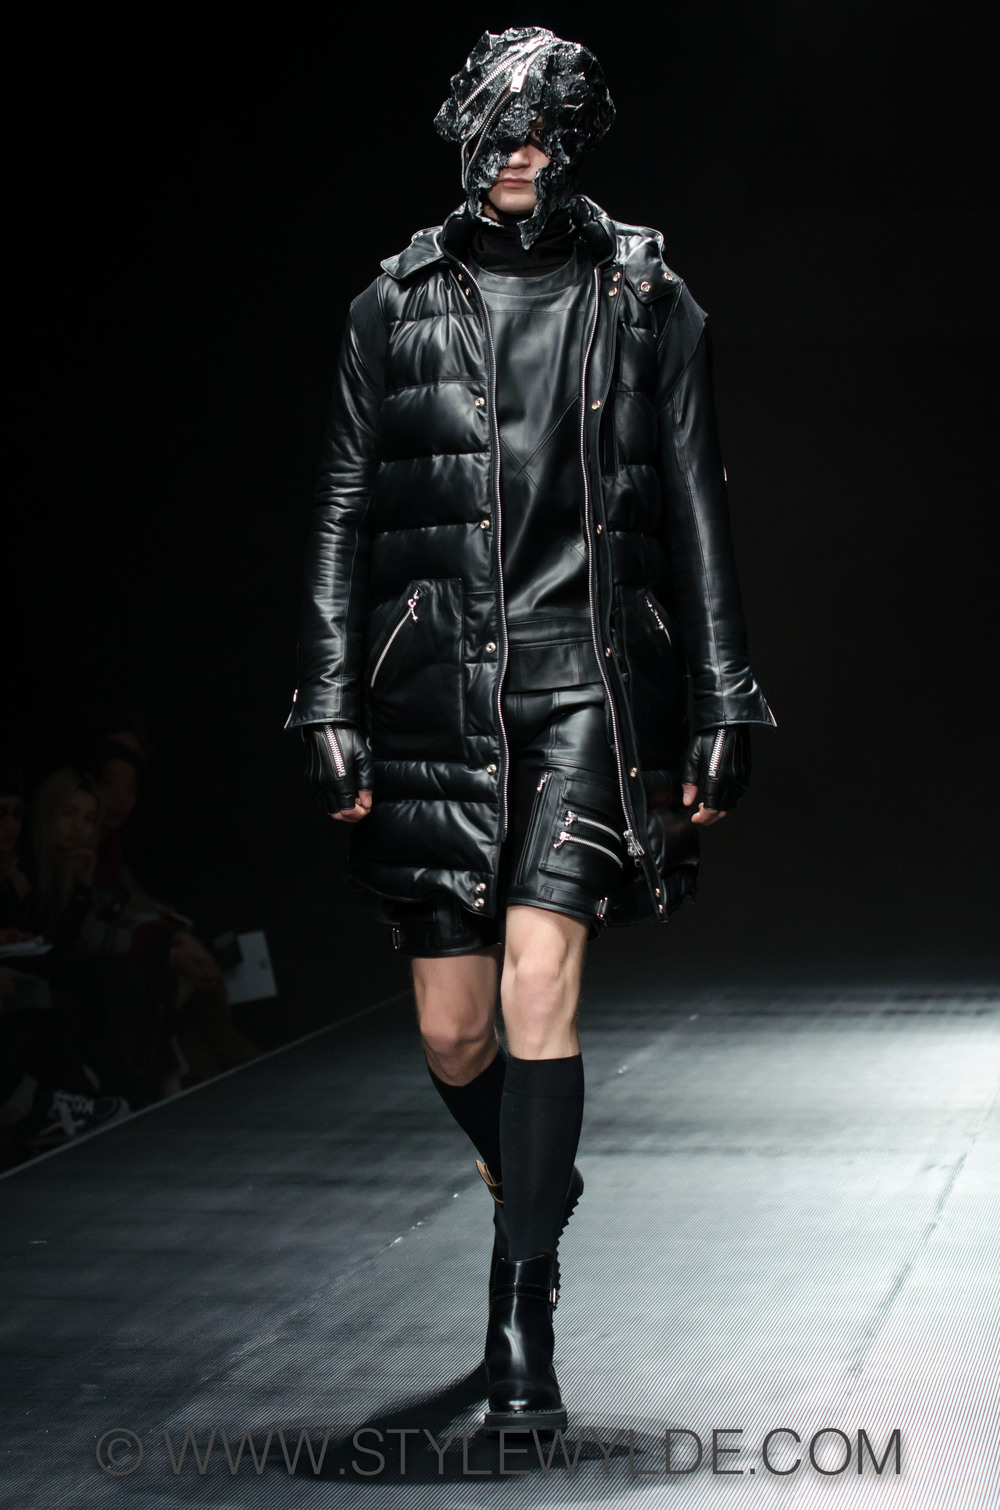 StyleWylde_99percentIS_AW14_edited (1 of 1)-12.jpg